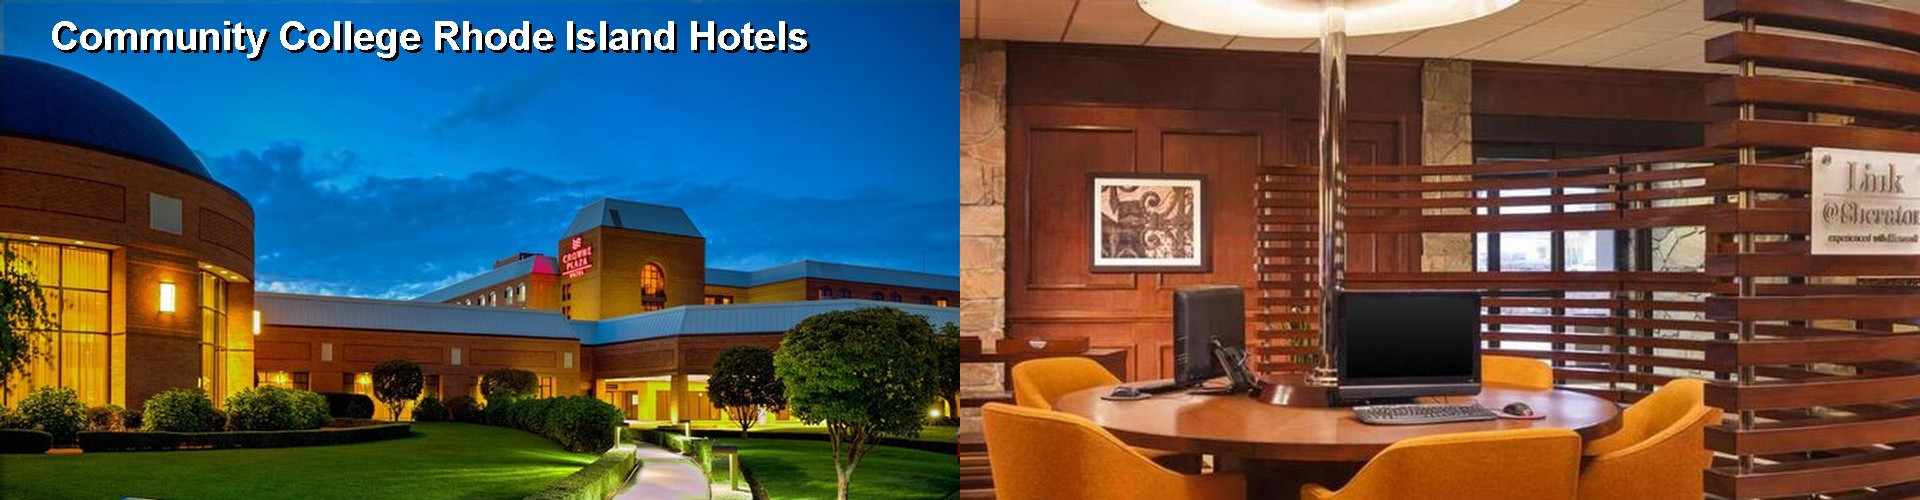 5 Best Hotels Near Community College Rhode Island